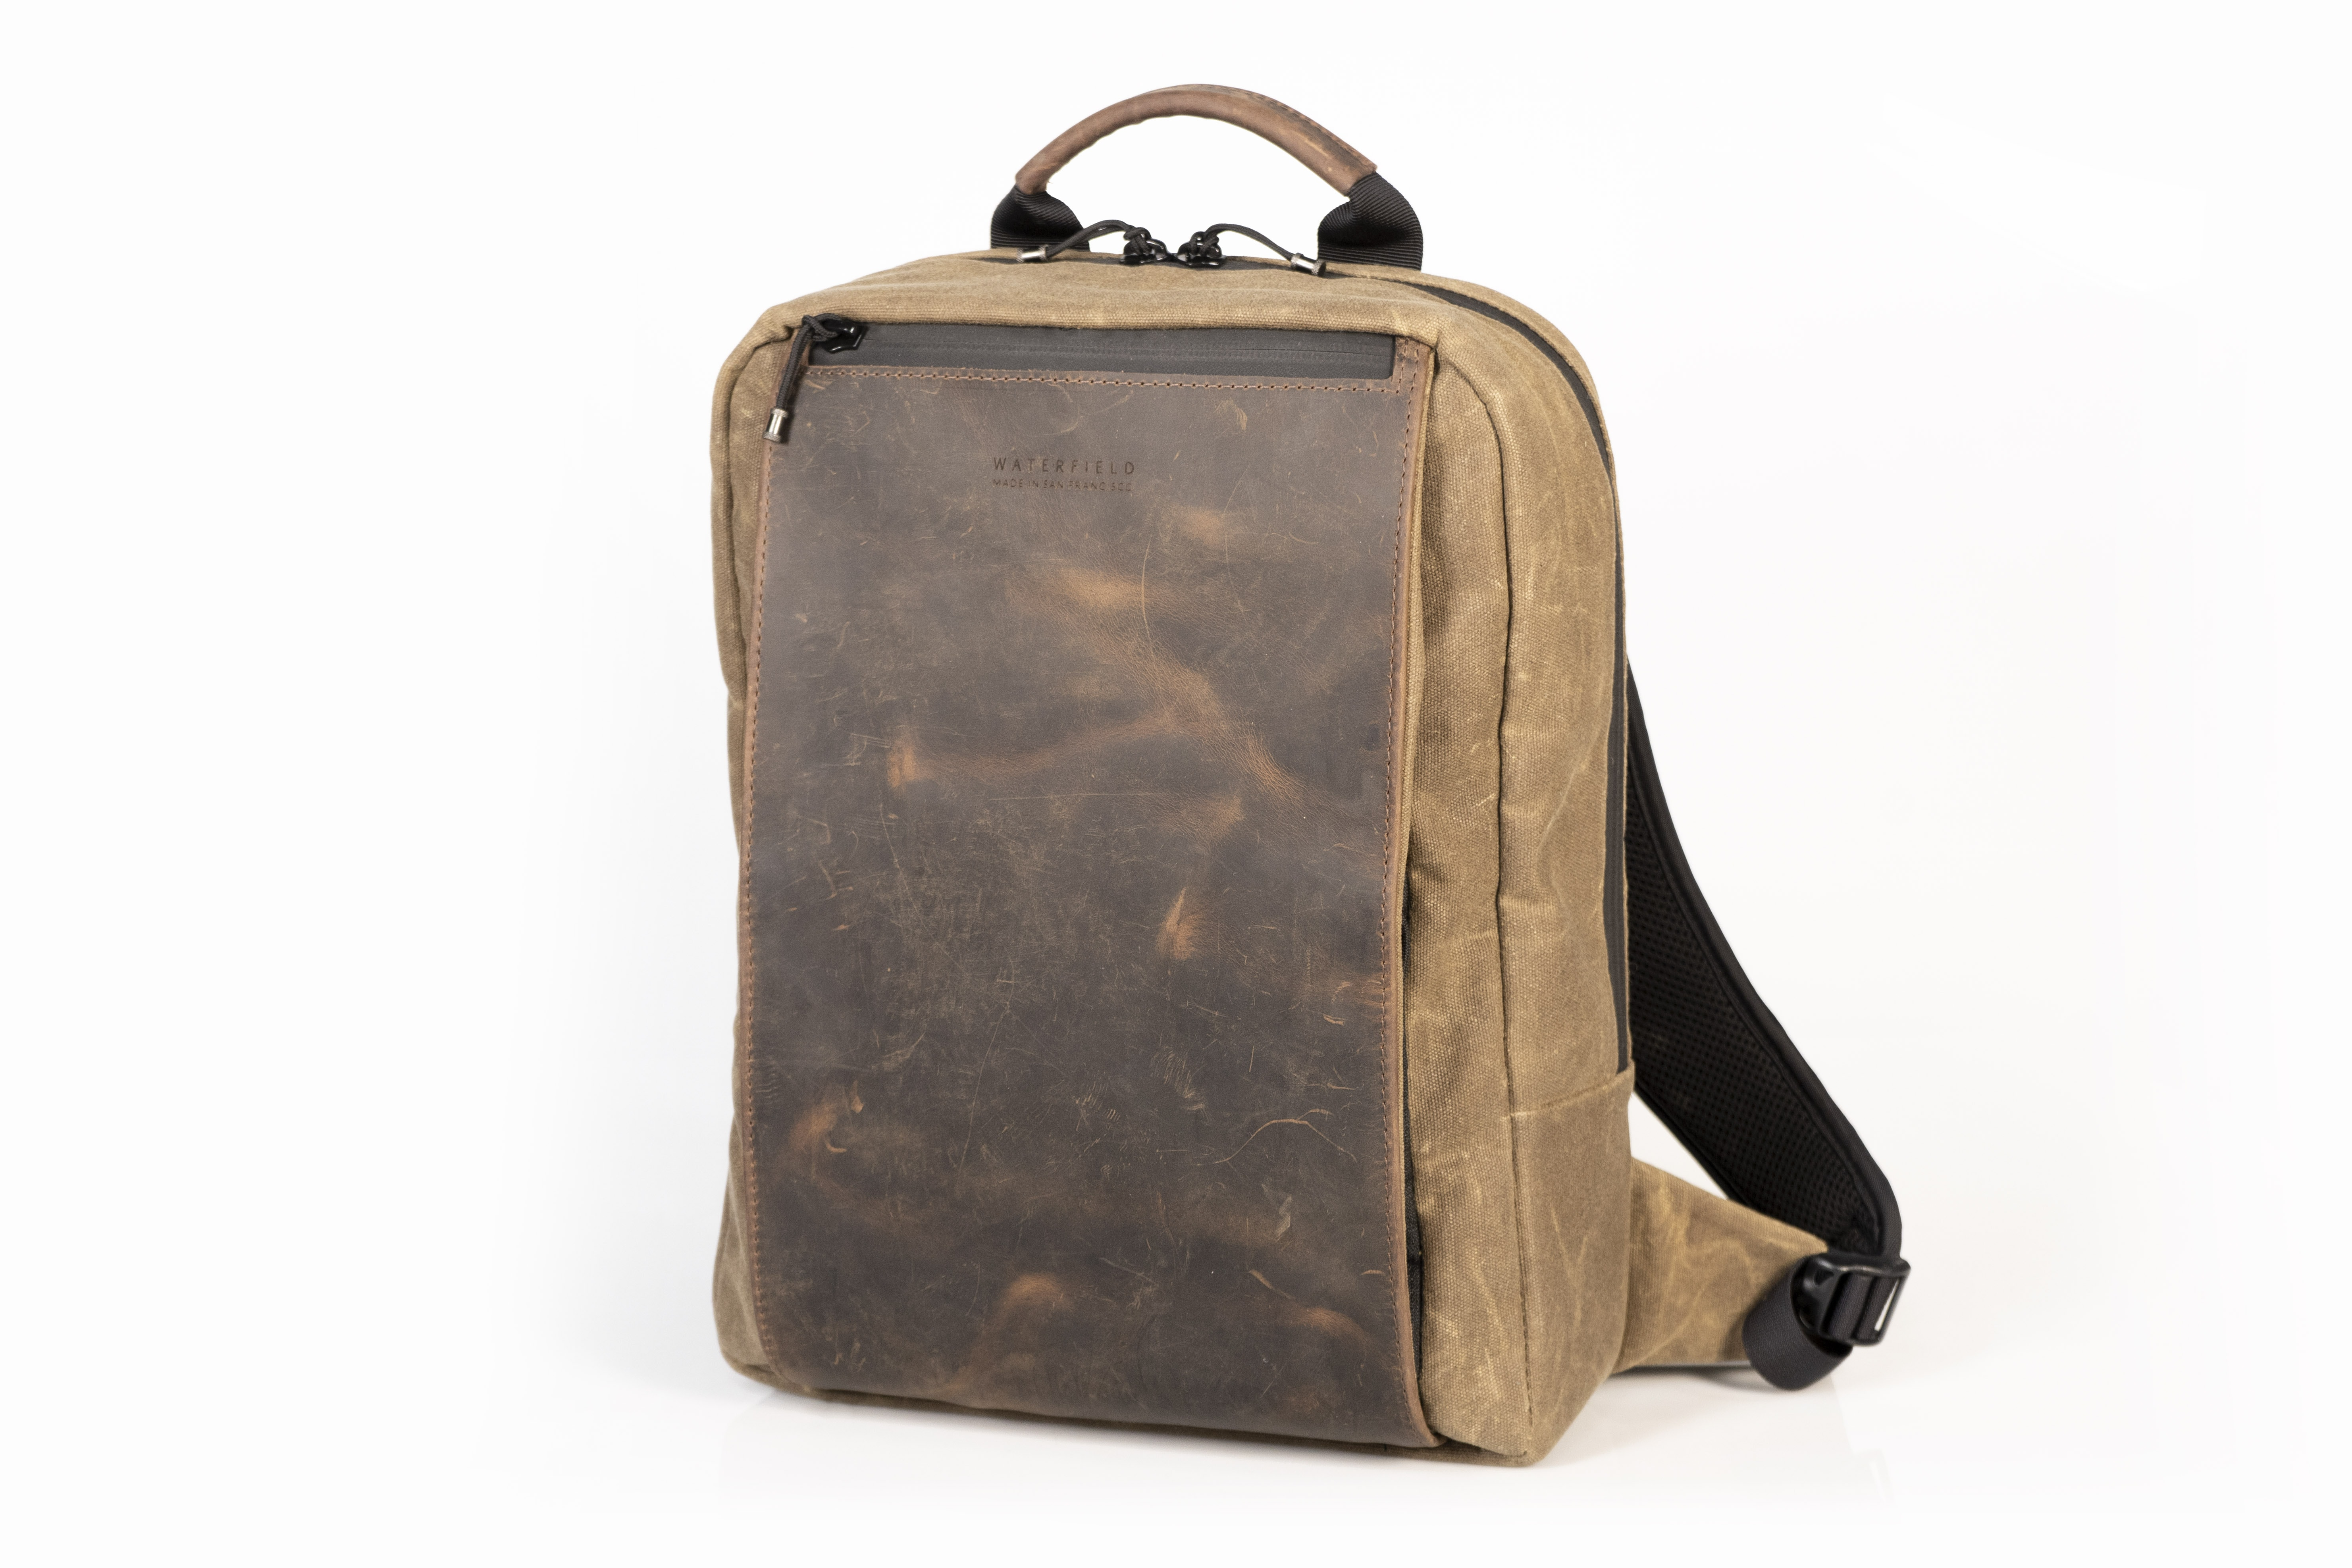 The WaterField Designs Sutter Slim Backpack in tan waxed canvas with chocolate leather accents looks classy.